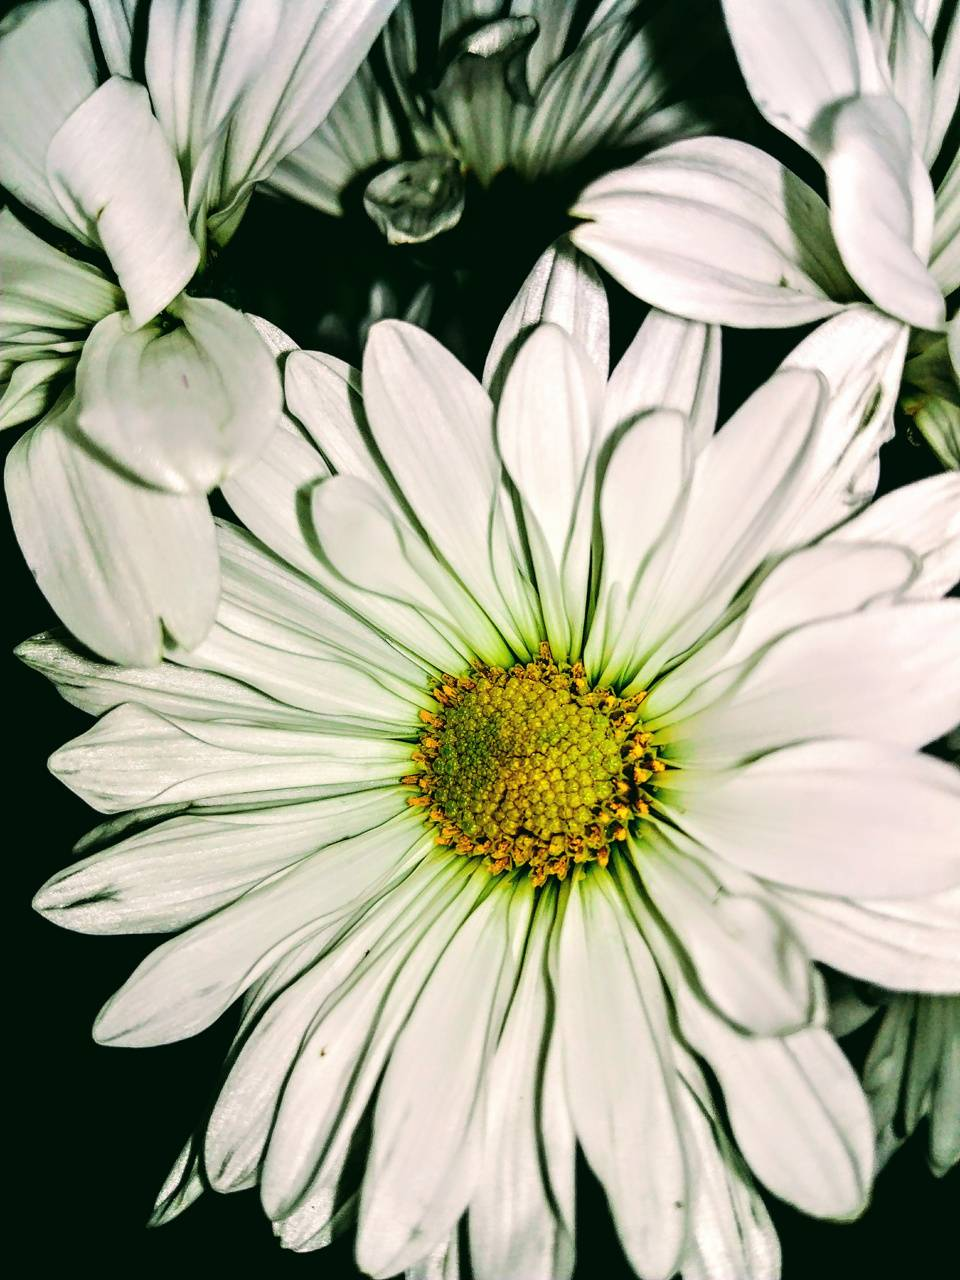 White Daisy Wallpaper By Kacileigh247 Bc Free On Zedge